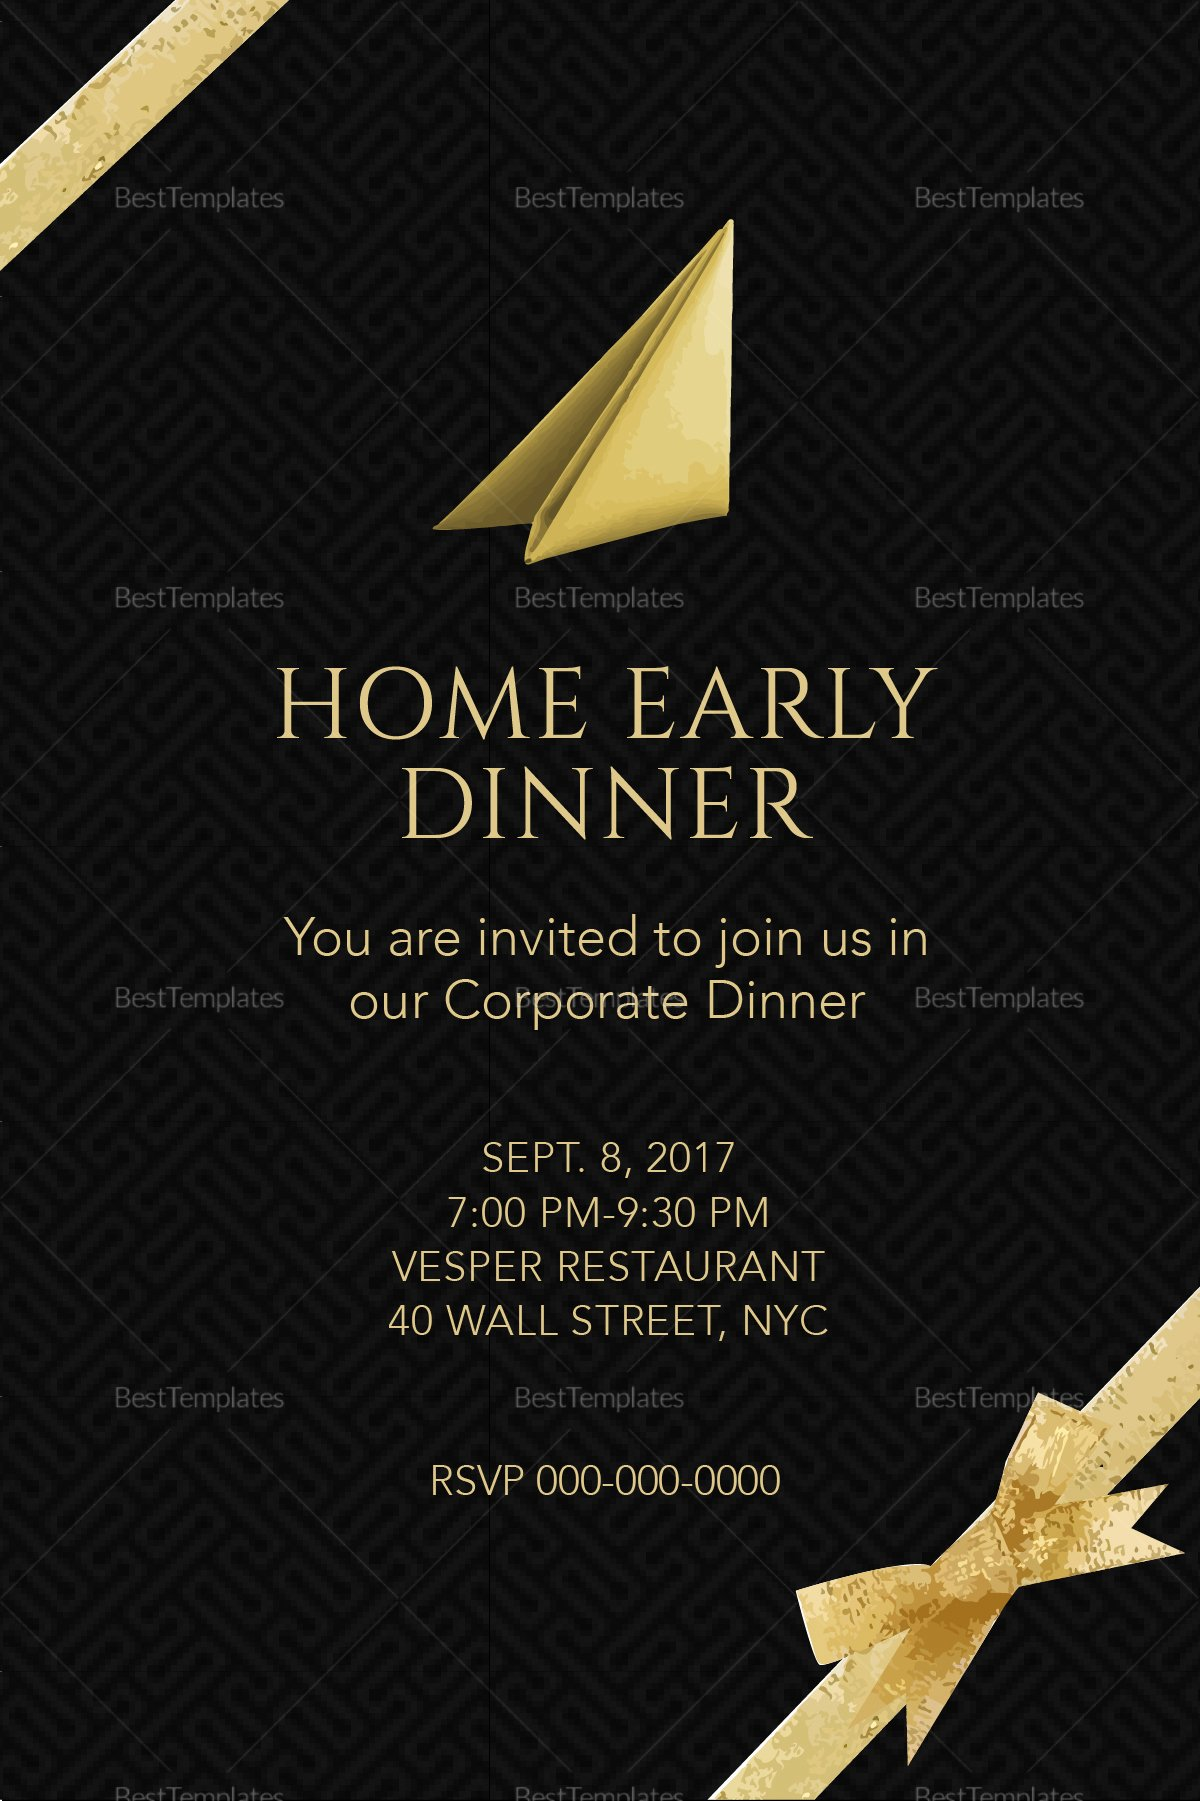 Dinner Invitation Template Word Luxury Corporate Dinner Invitation Design Template In Psd Word